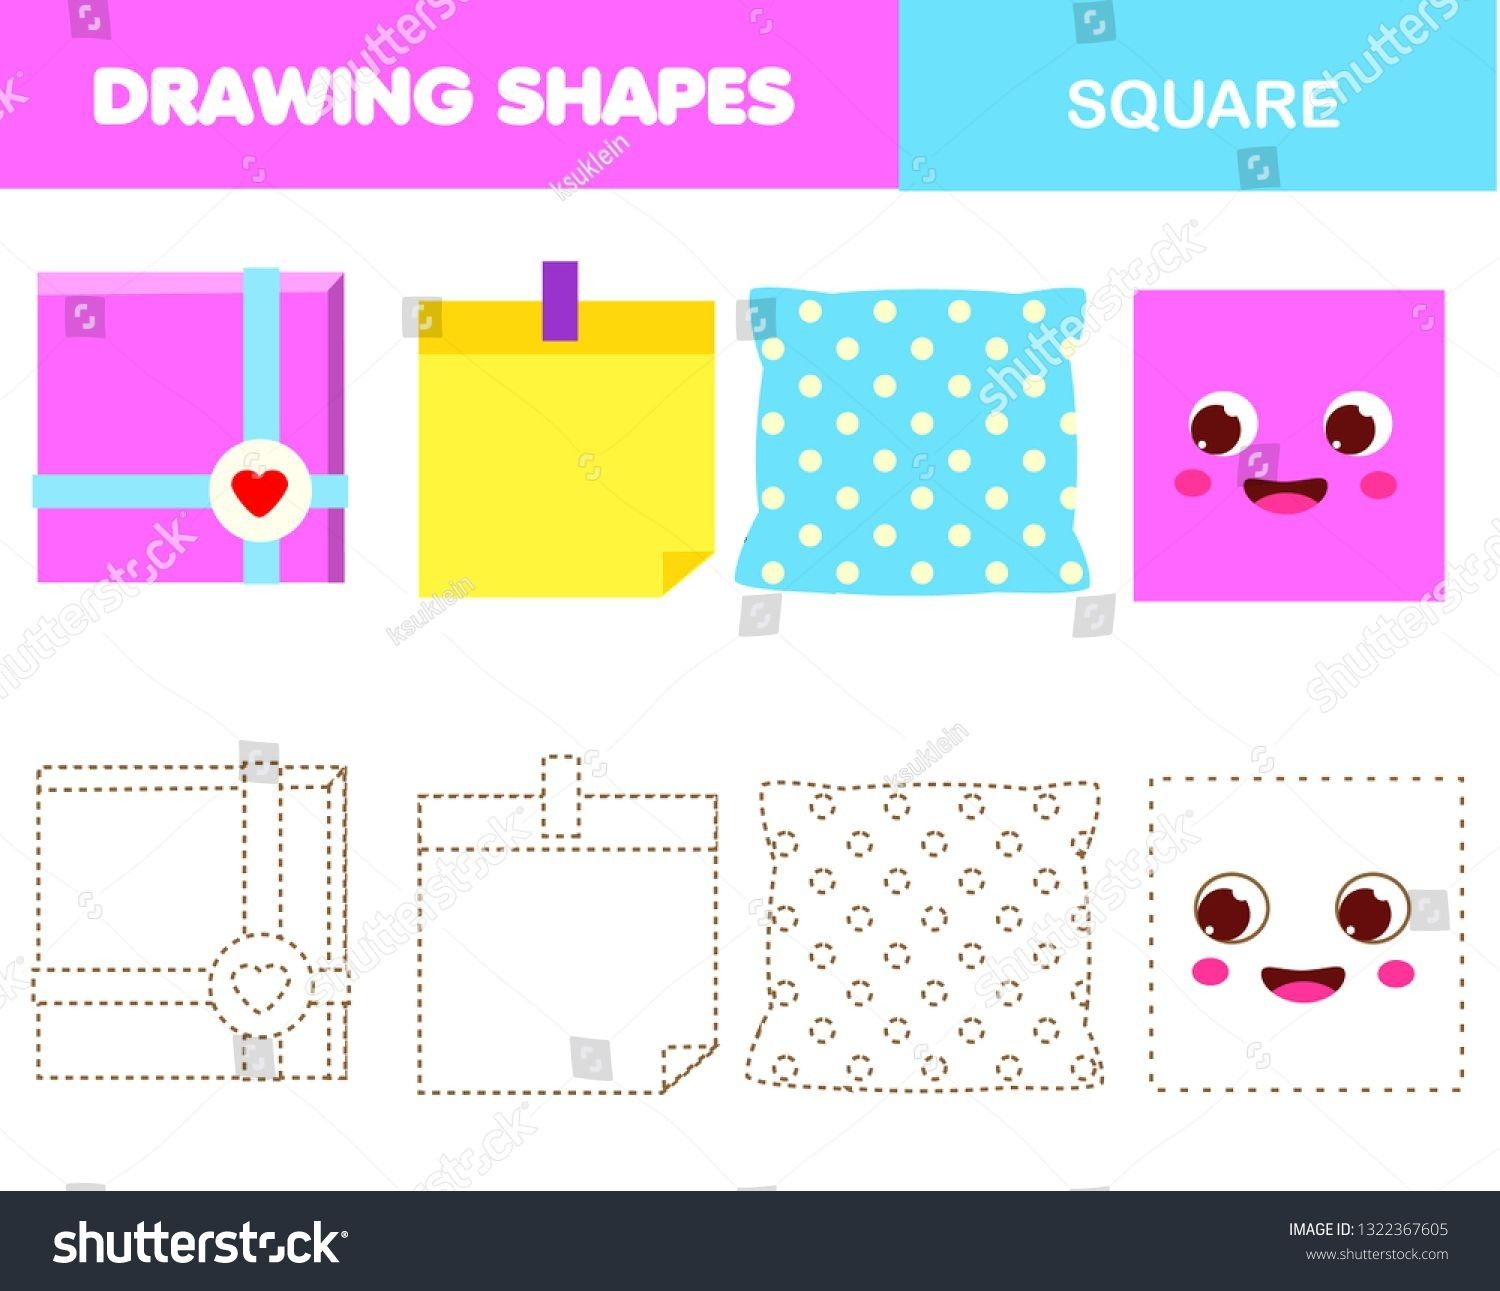 22 Geometric Shapes Kindergarten Worksheets On Drawing